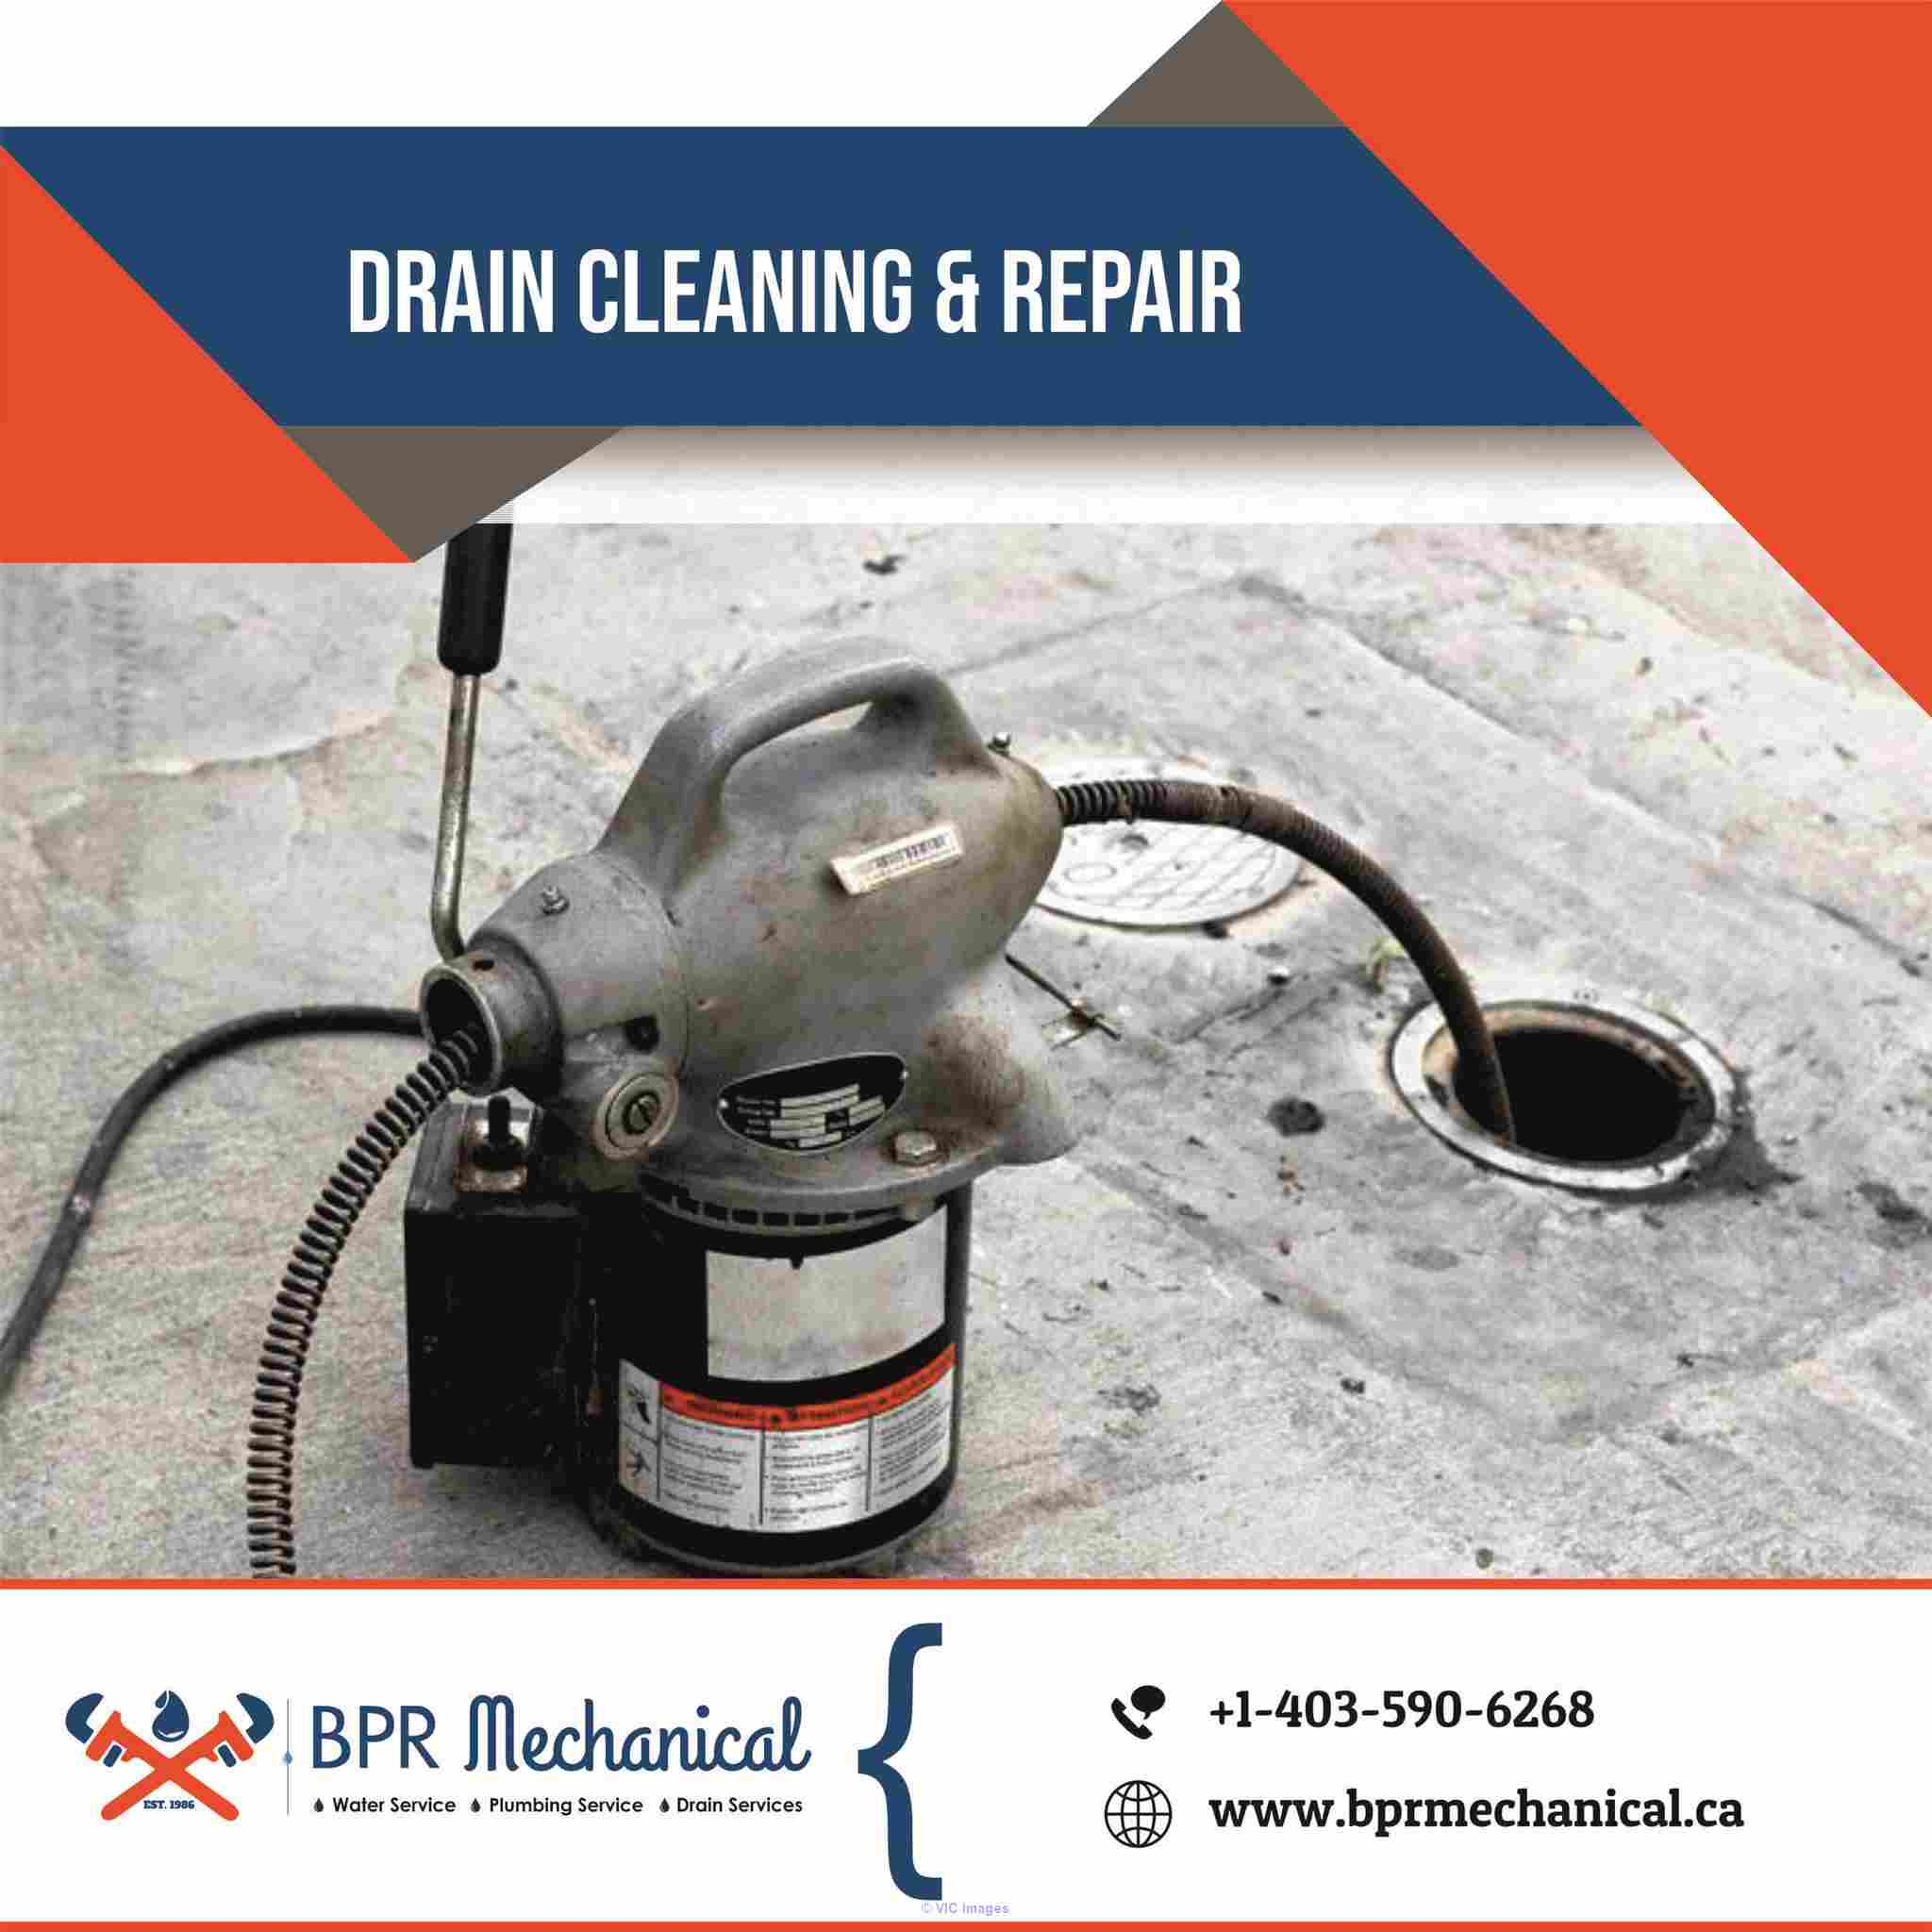 Drain Power Flushing Calgary NE: BPR Mechanical Calgary, Alberta, Canada Annonces Classées